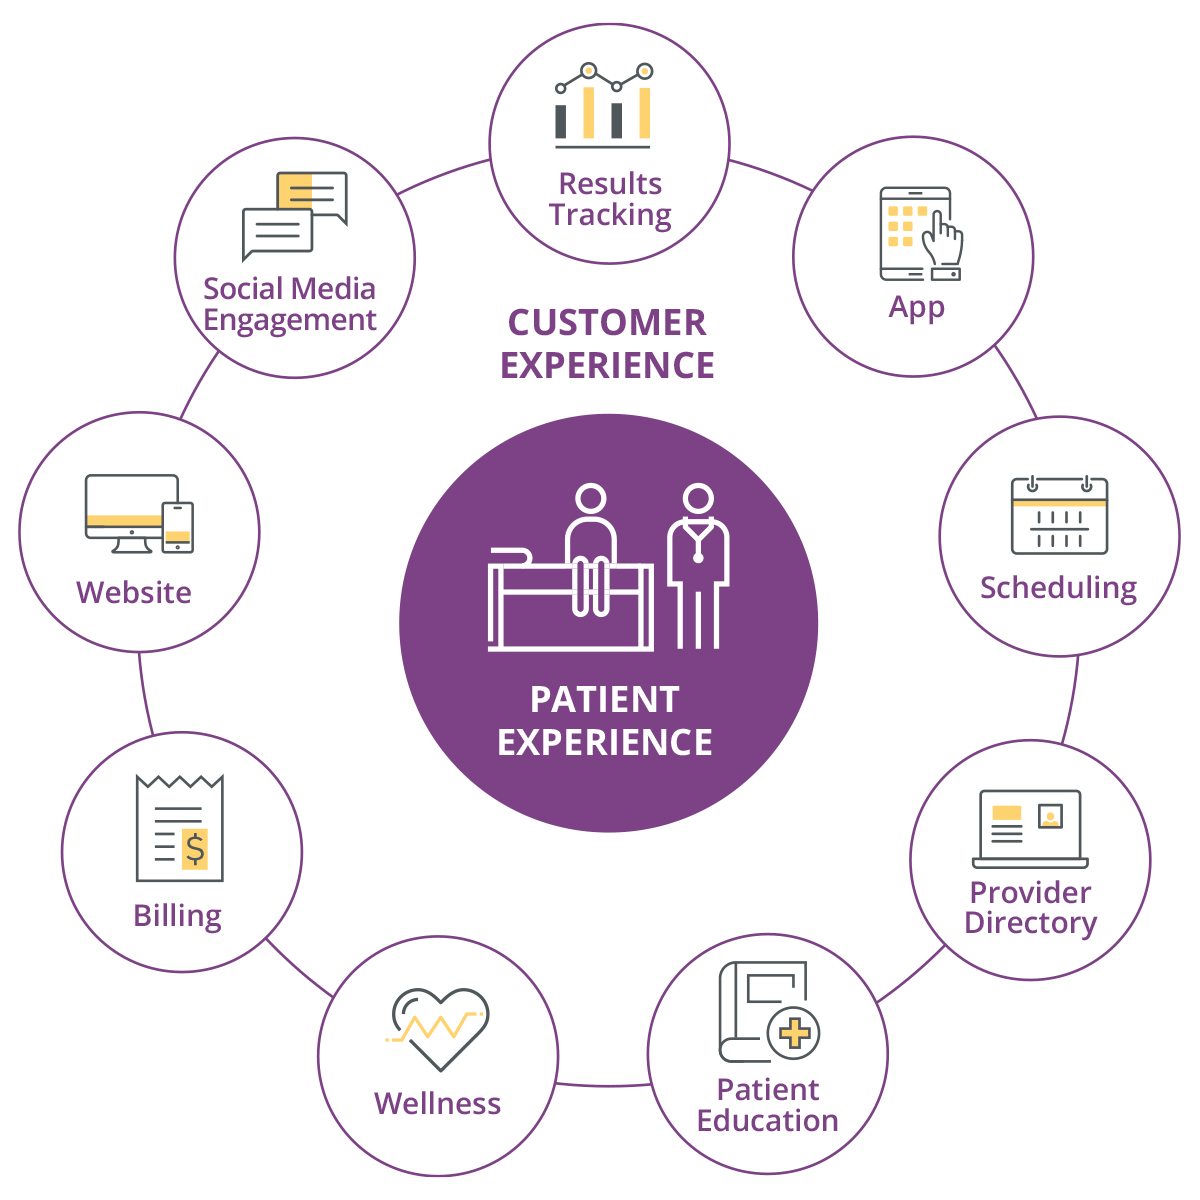 The Customer Experience graphic